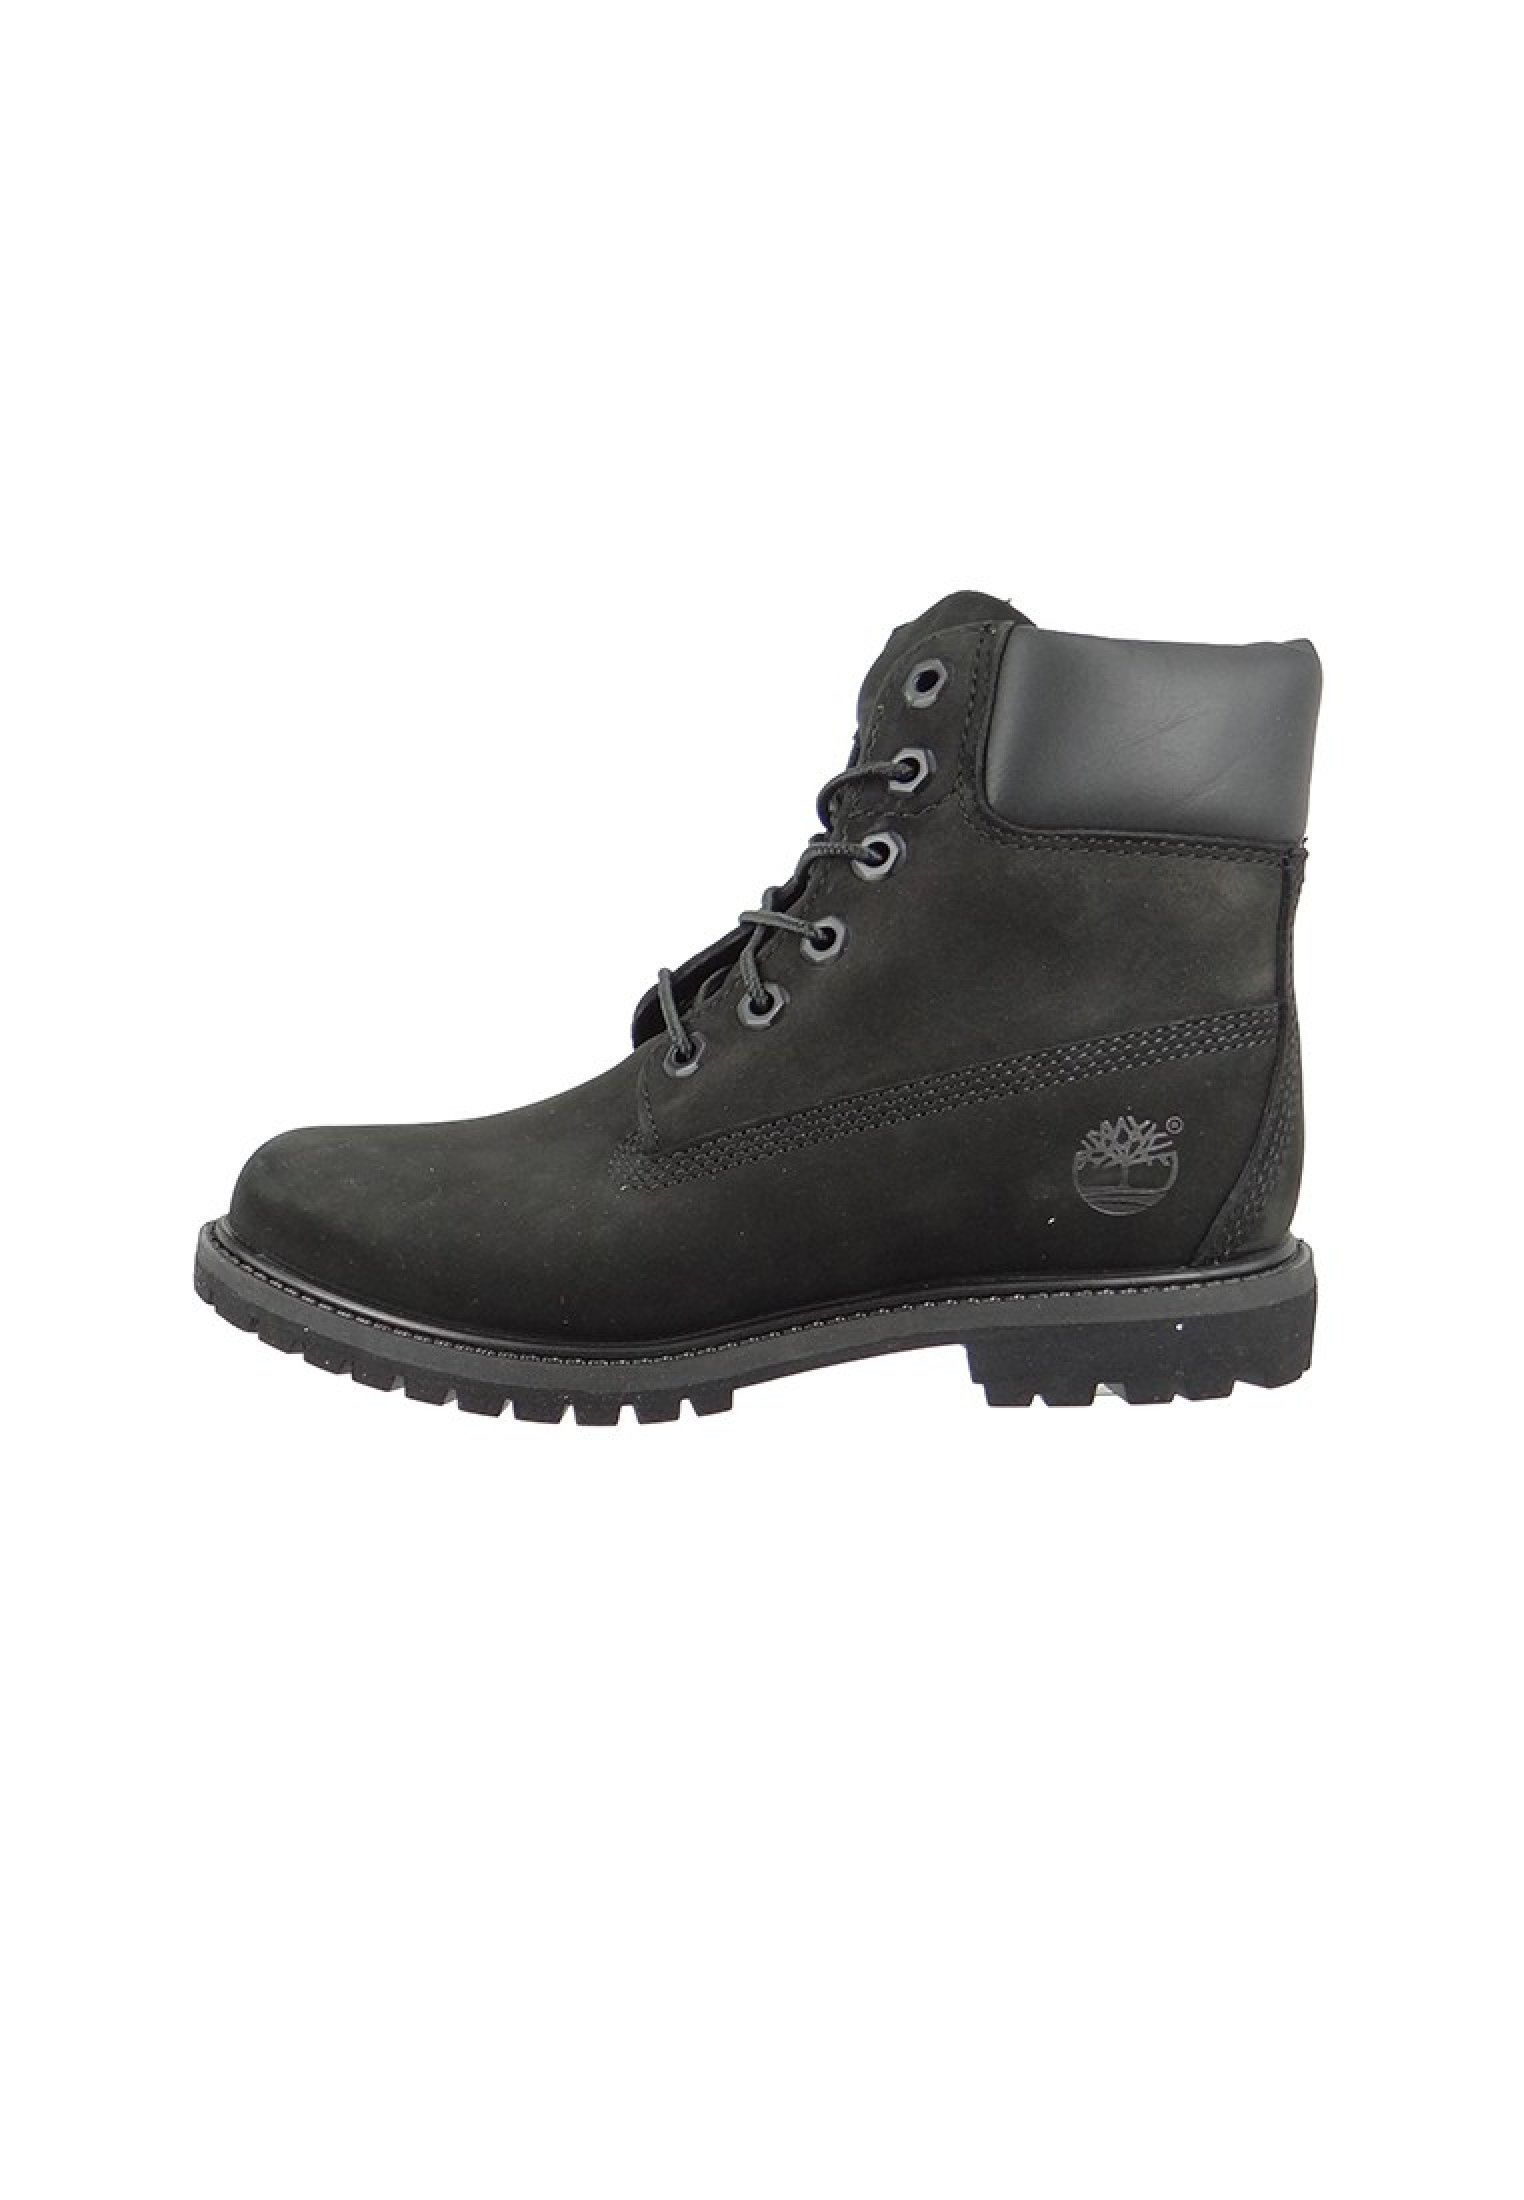 timberland damen stiefel 6 inch premium boot leder black waterbuck schwarz 8658a damenschuhe. Black Bedroom Furniture Sets. Home Design Ideas